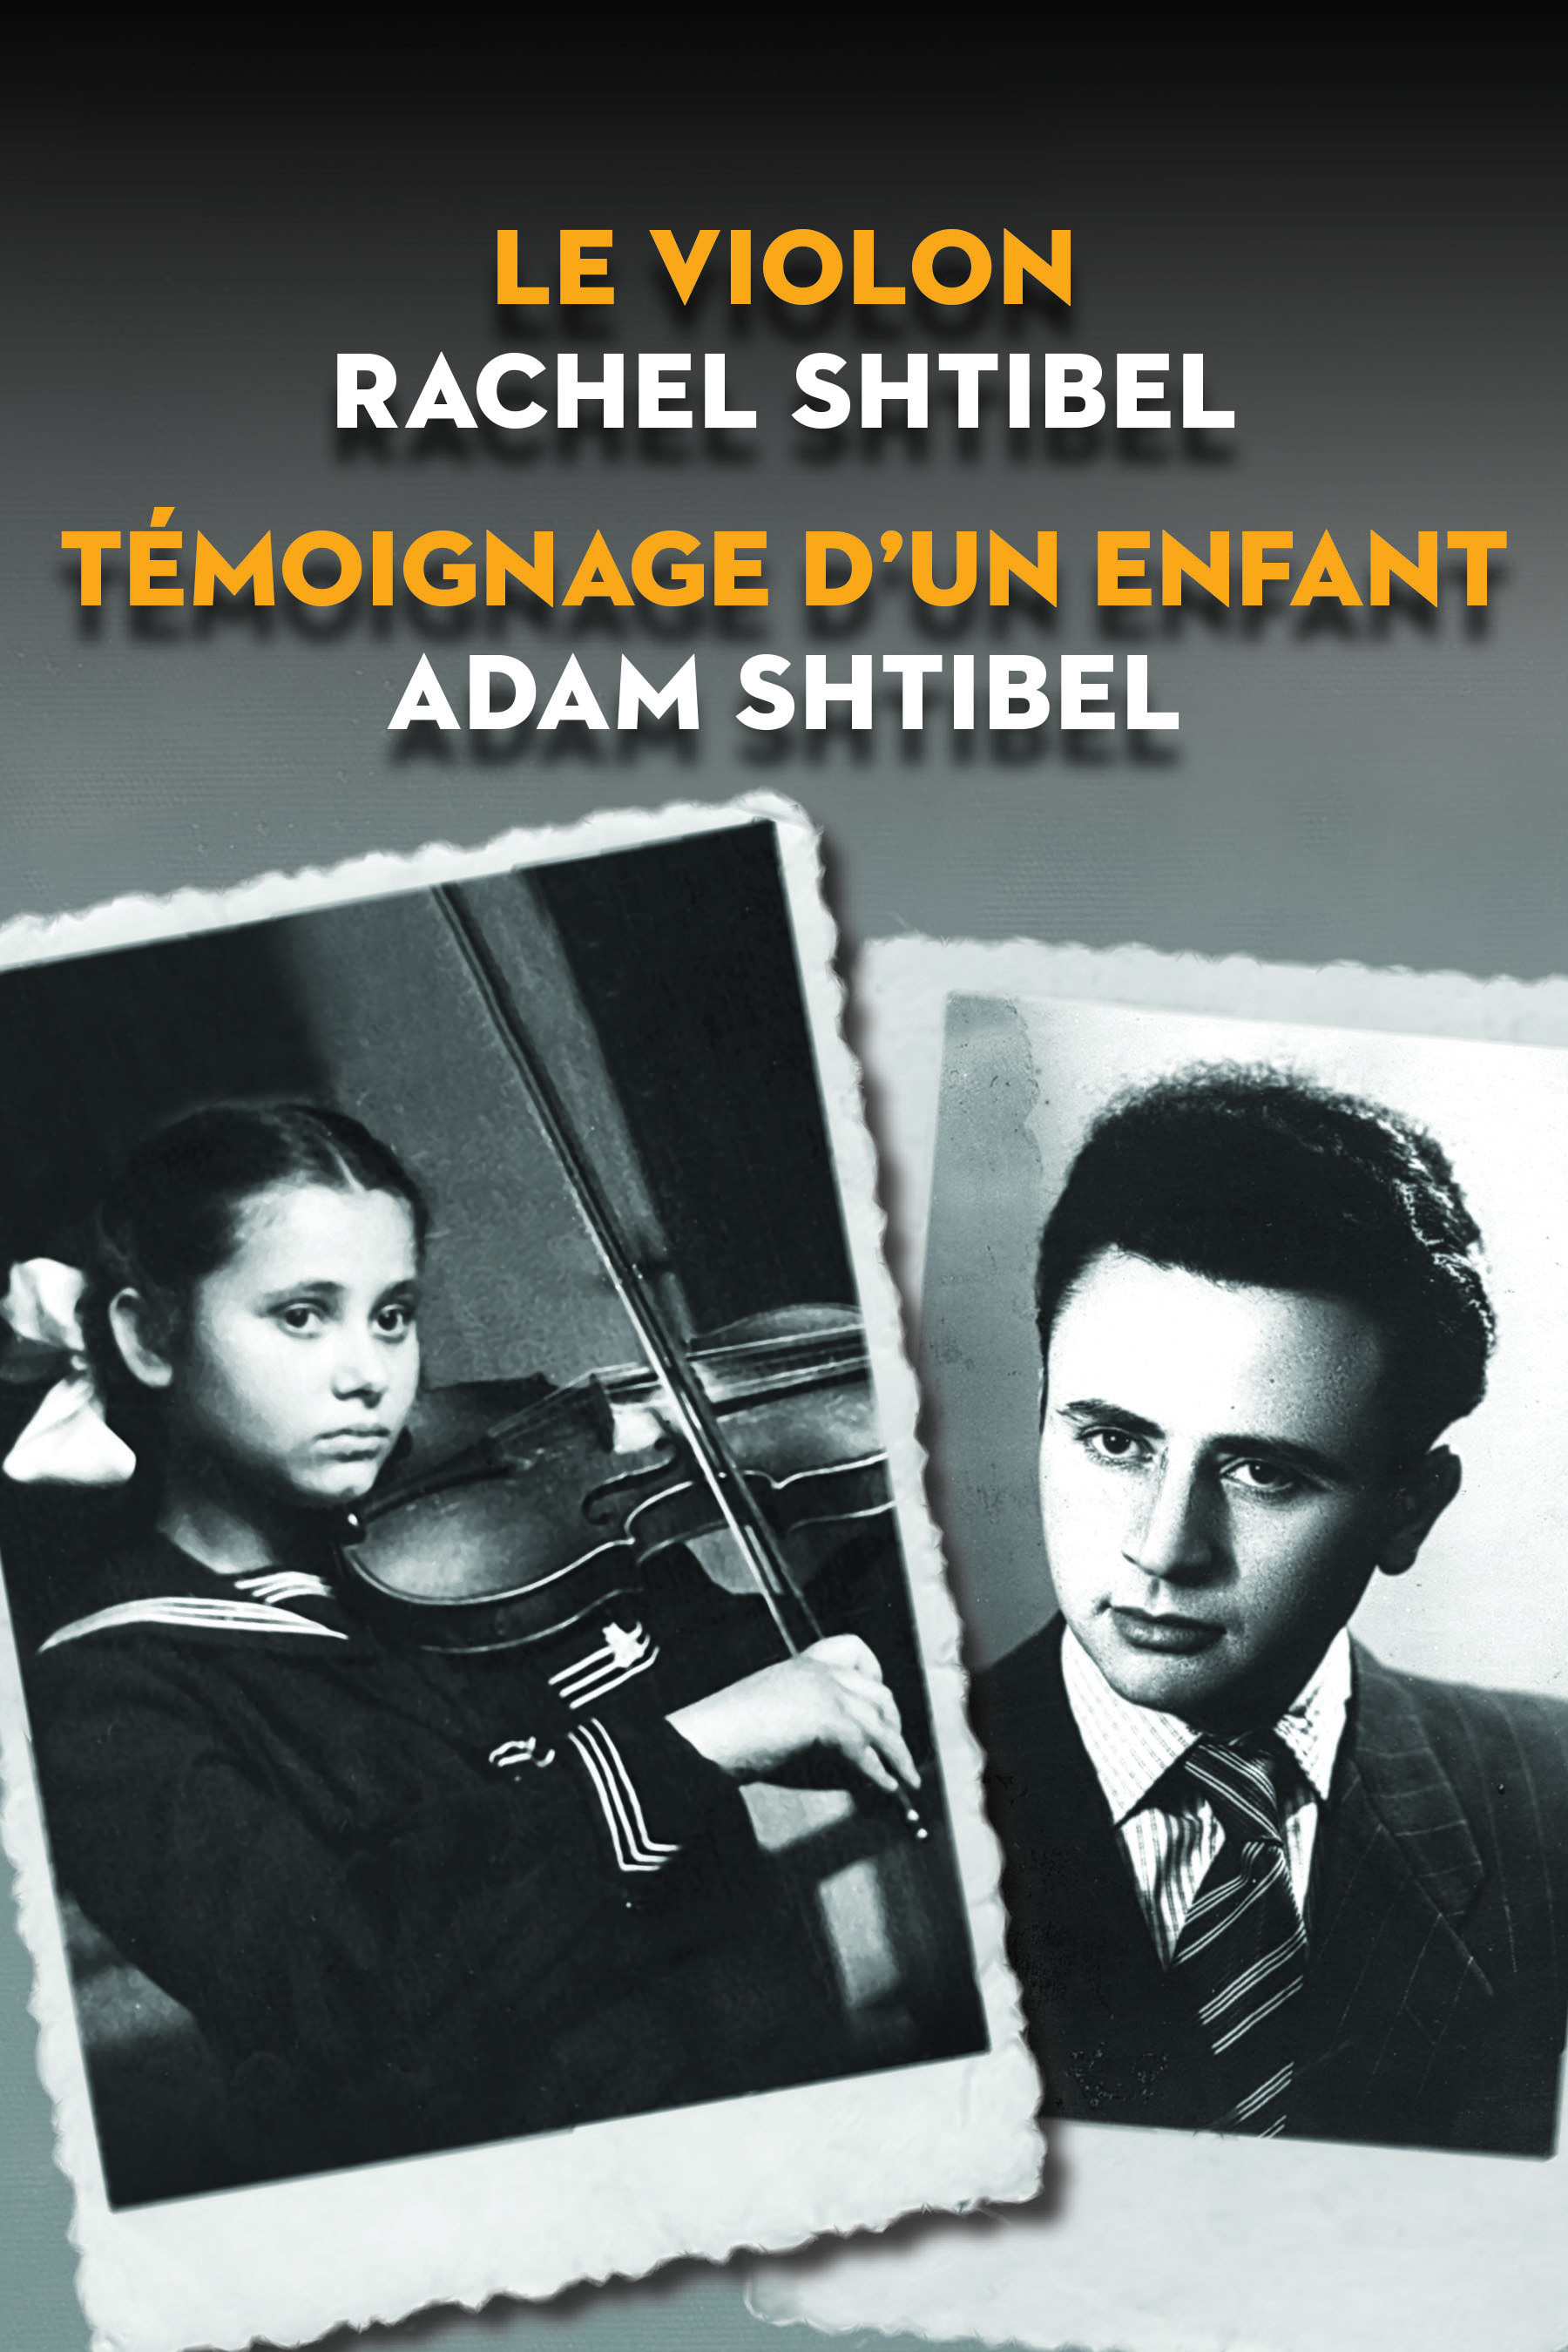 Le Violon book cover